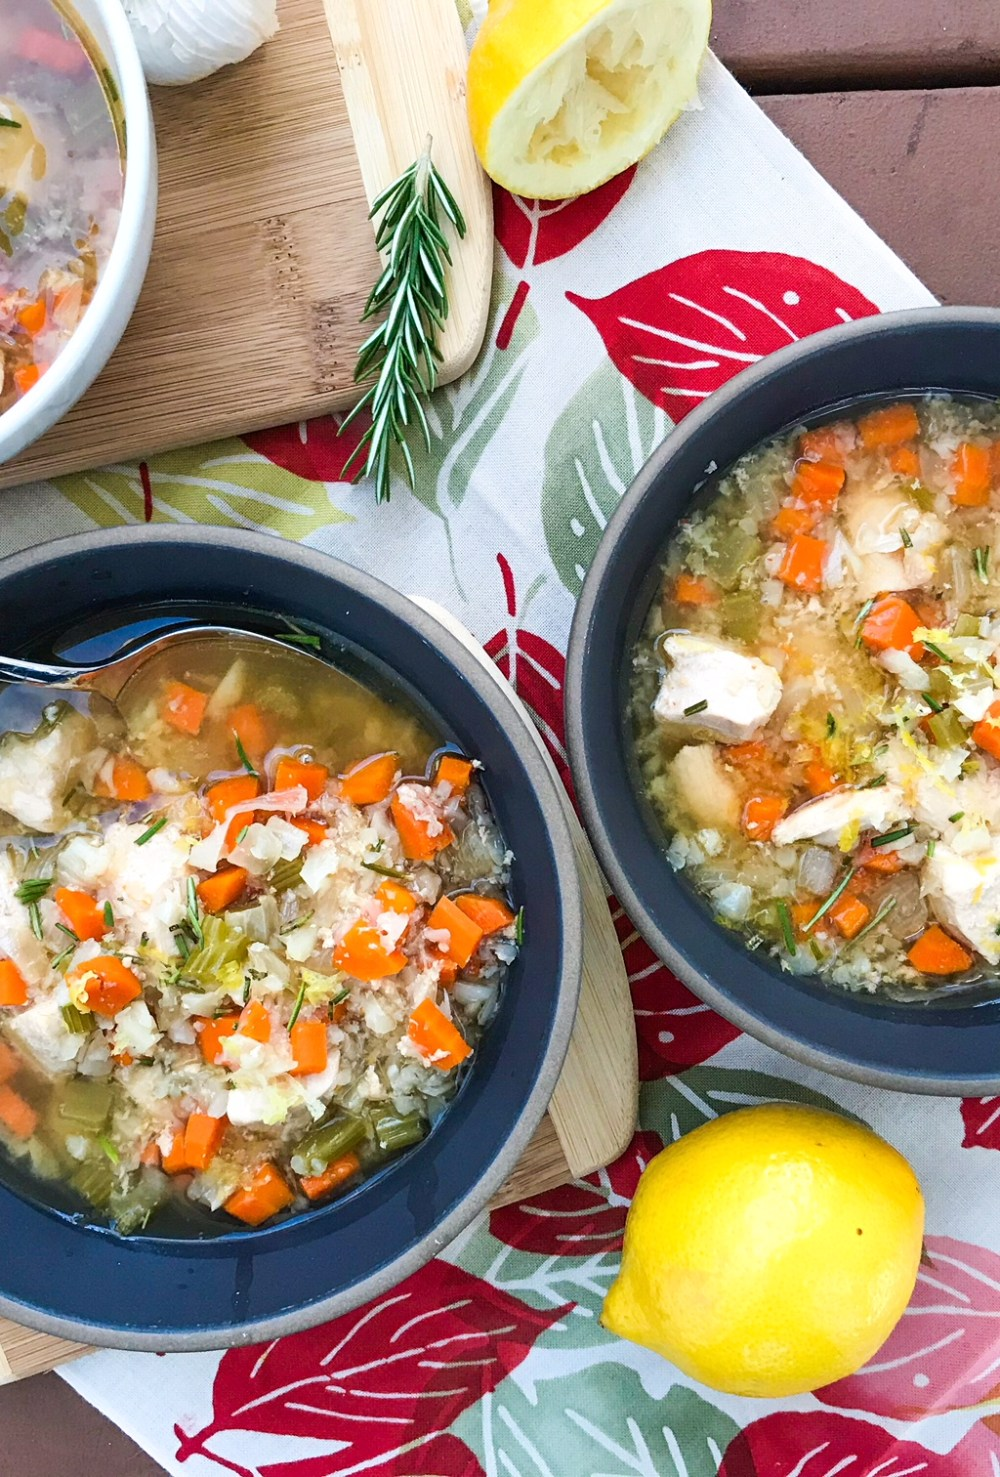 Slow Cooker Lemon & Rosemary Chicken Soup | Paleo, Whole30, Low-carb | The Real Food Effect by Candace Kennedy, Holistic Nutritionist